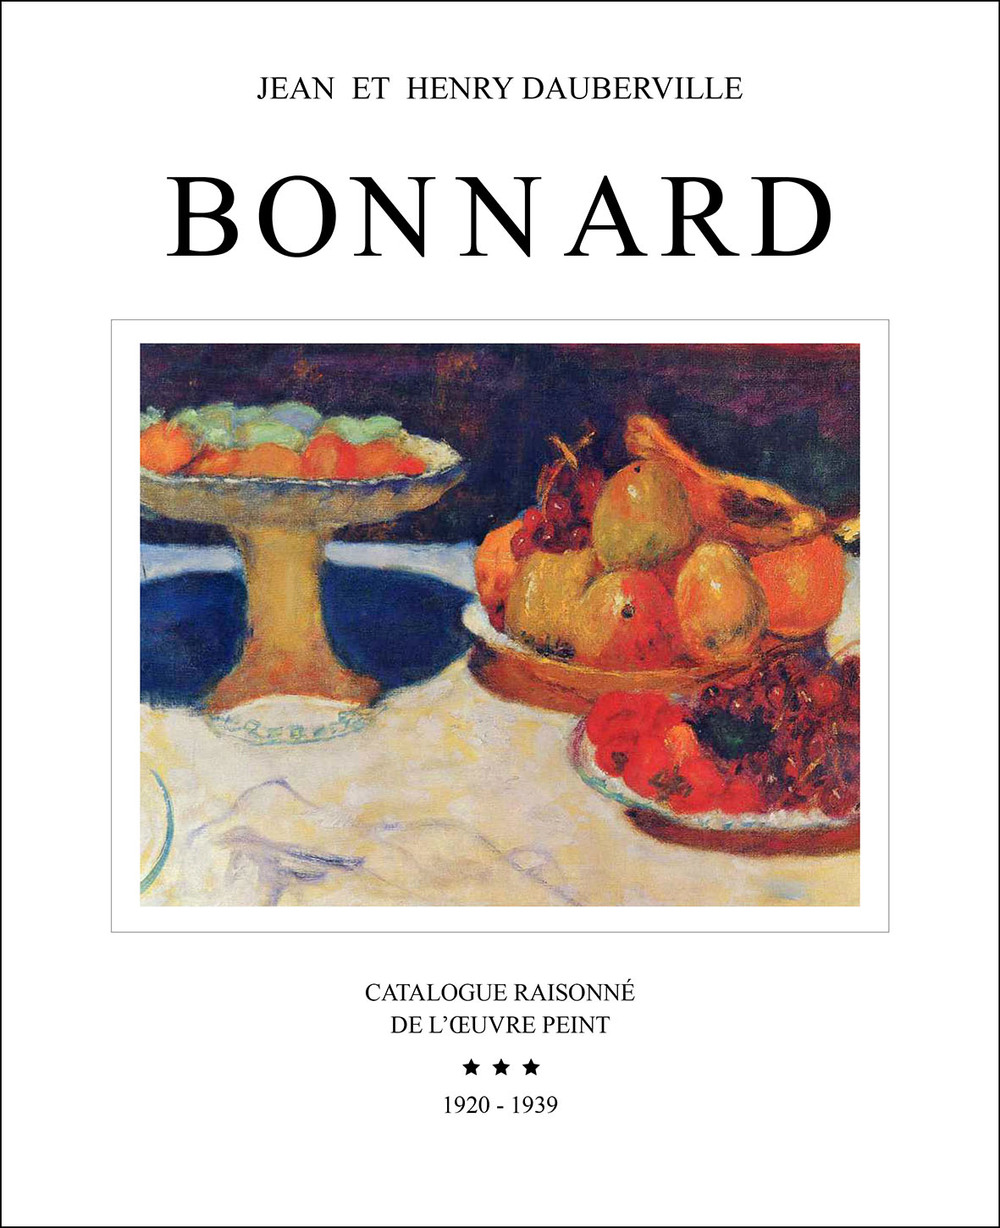 BONNARD, Catalogue raisonné de l'oeuvre peint  Bonnard, Catalogue raisonné of the Paintings